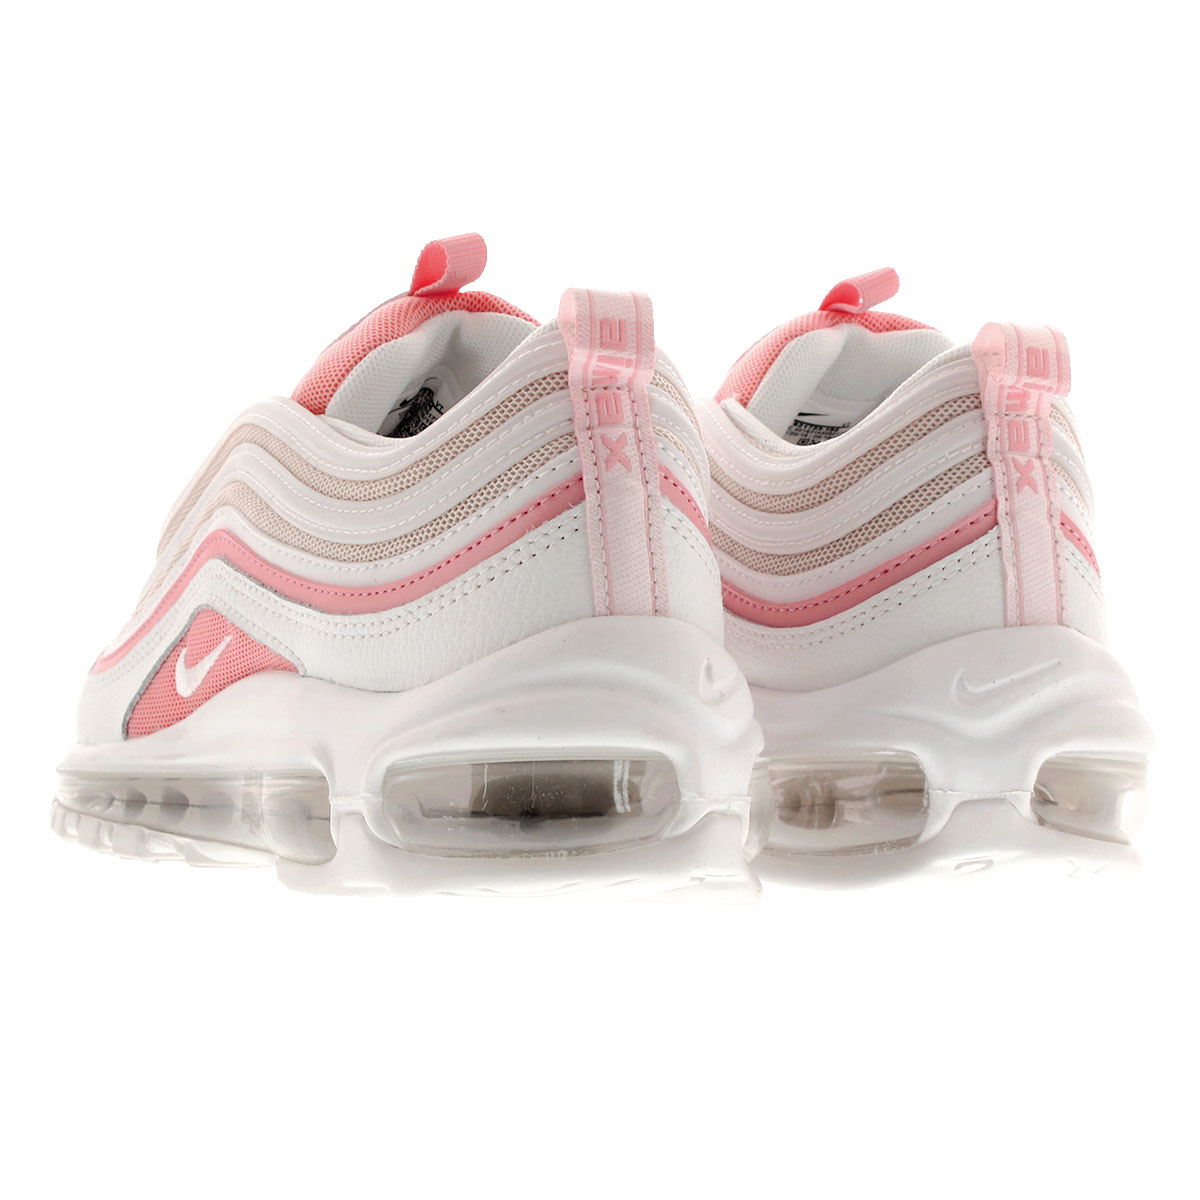 Details about Nike Wmns Air Max 97 White Bleached Coral Pink Women Running Shoes 921733 104